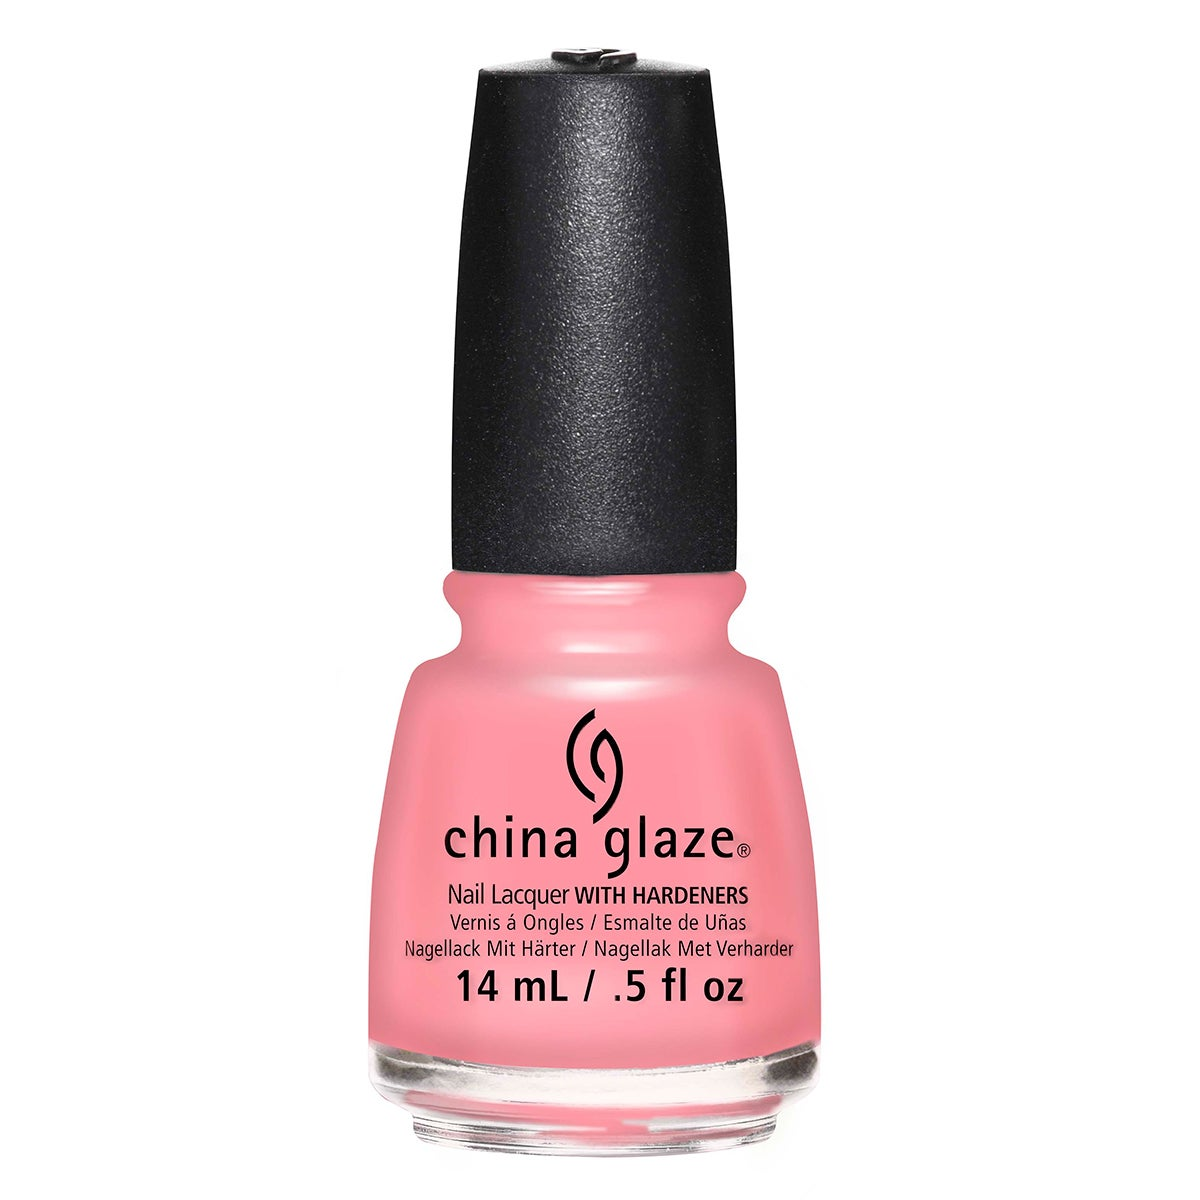 China Glaze Nail Lacquer, Pink or Swim